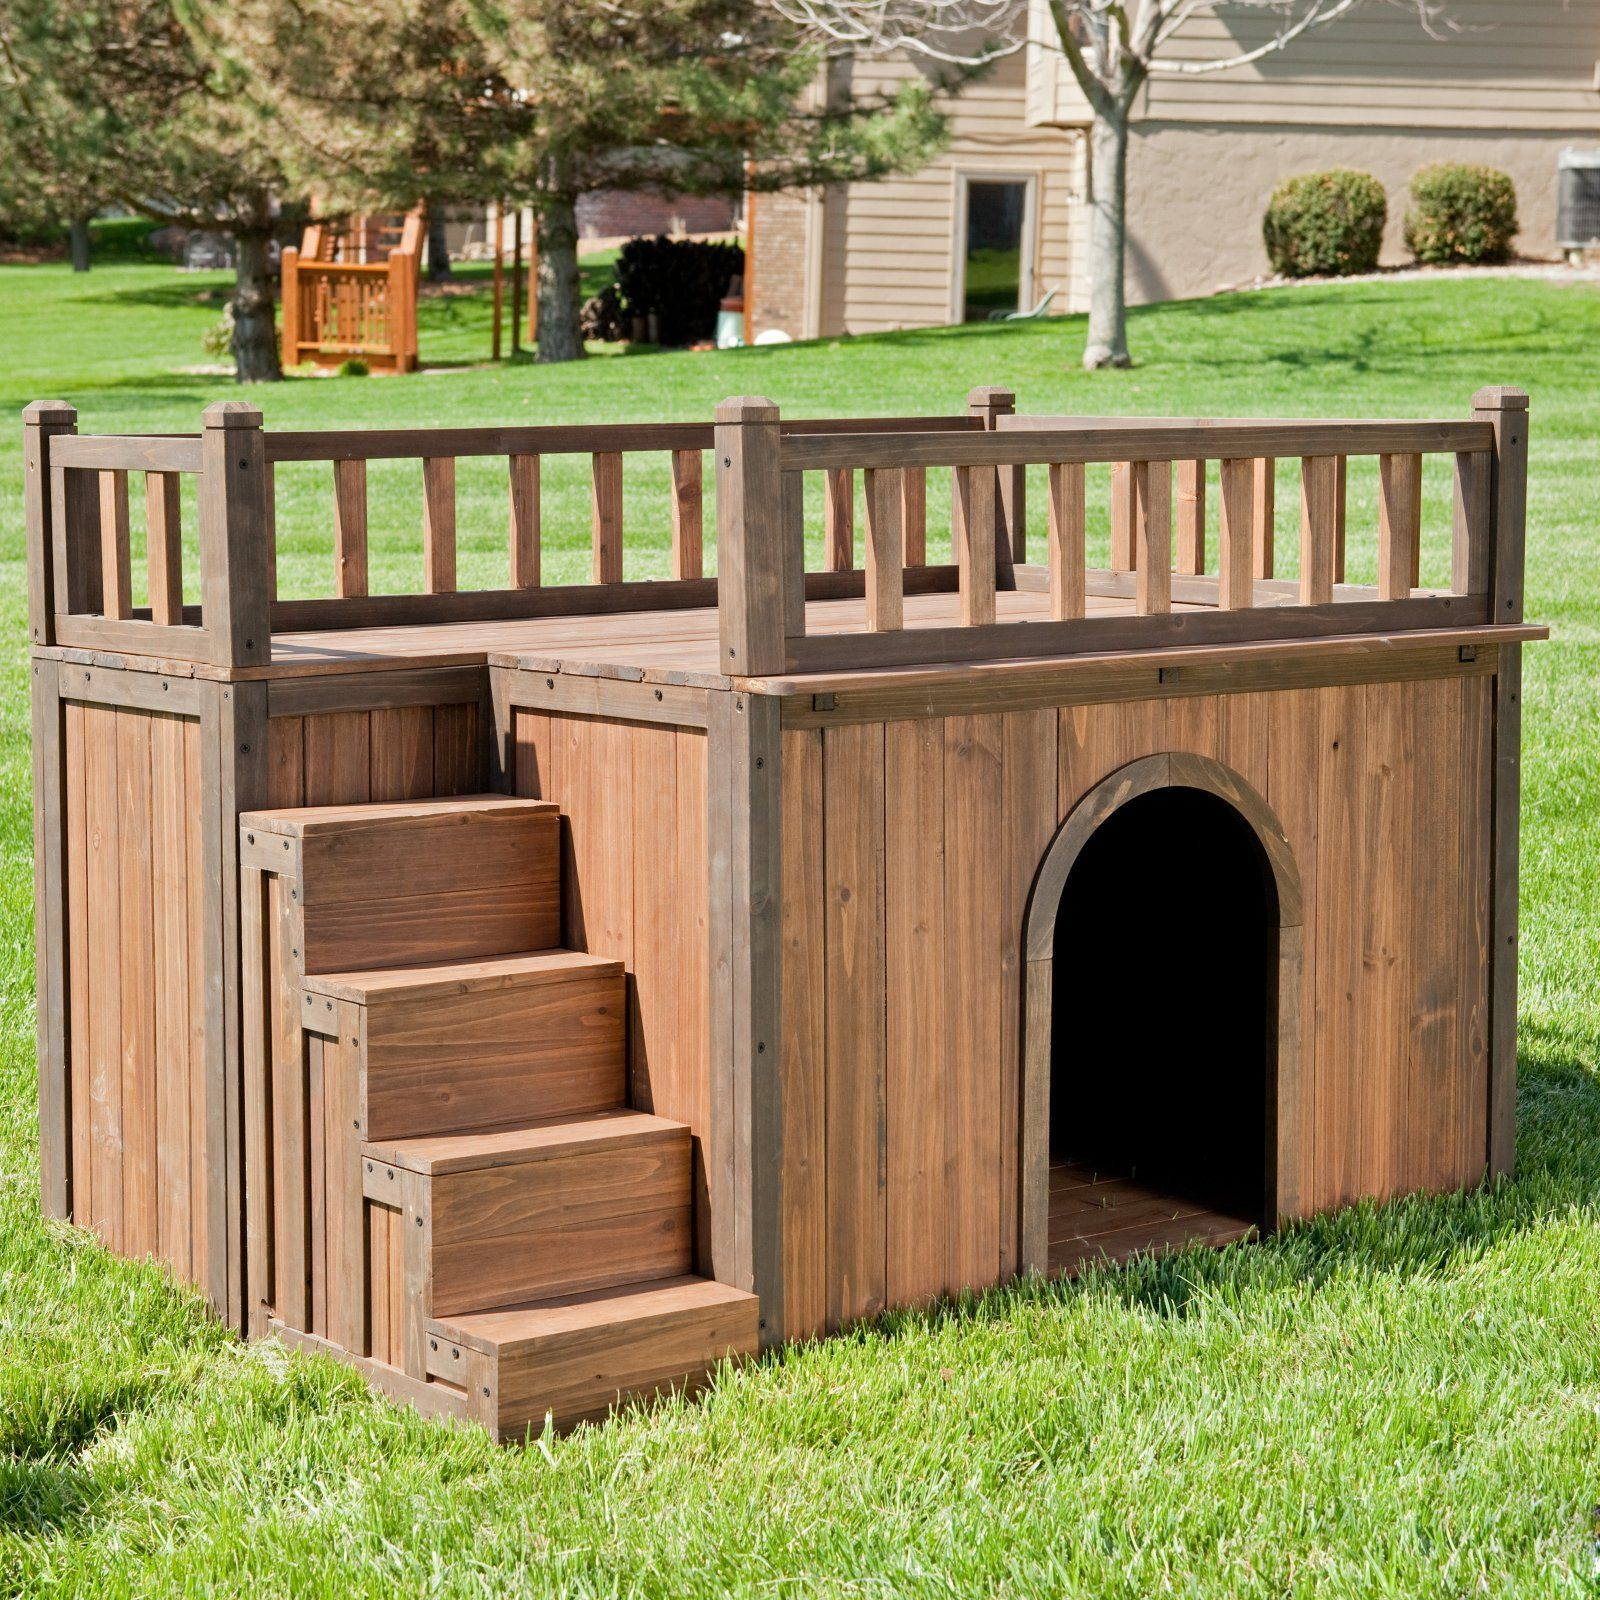 Indoor Dog House Plans For Small Dogs